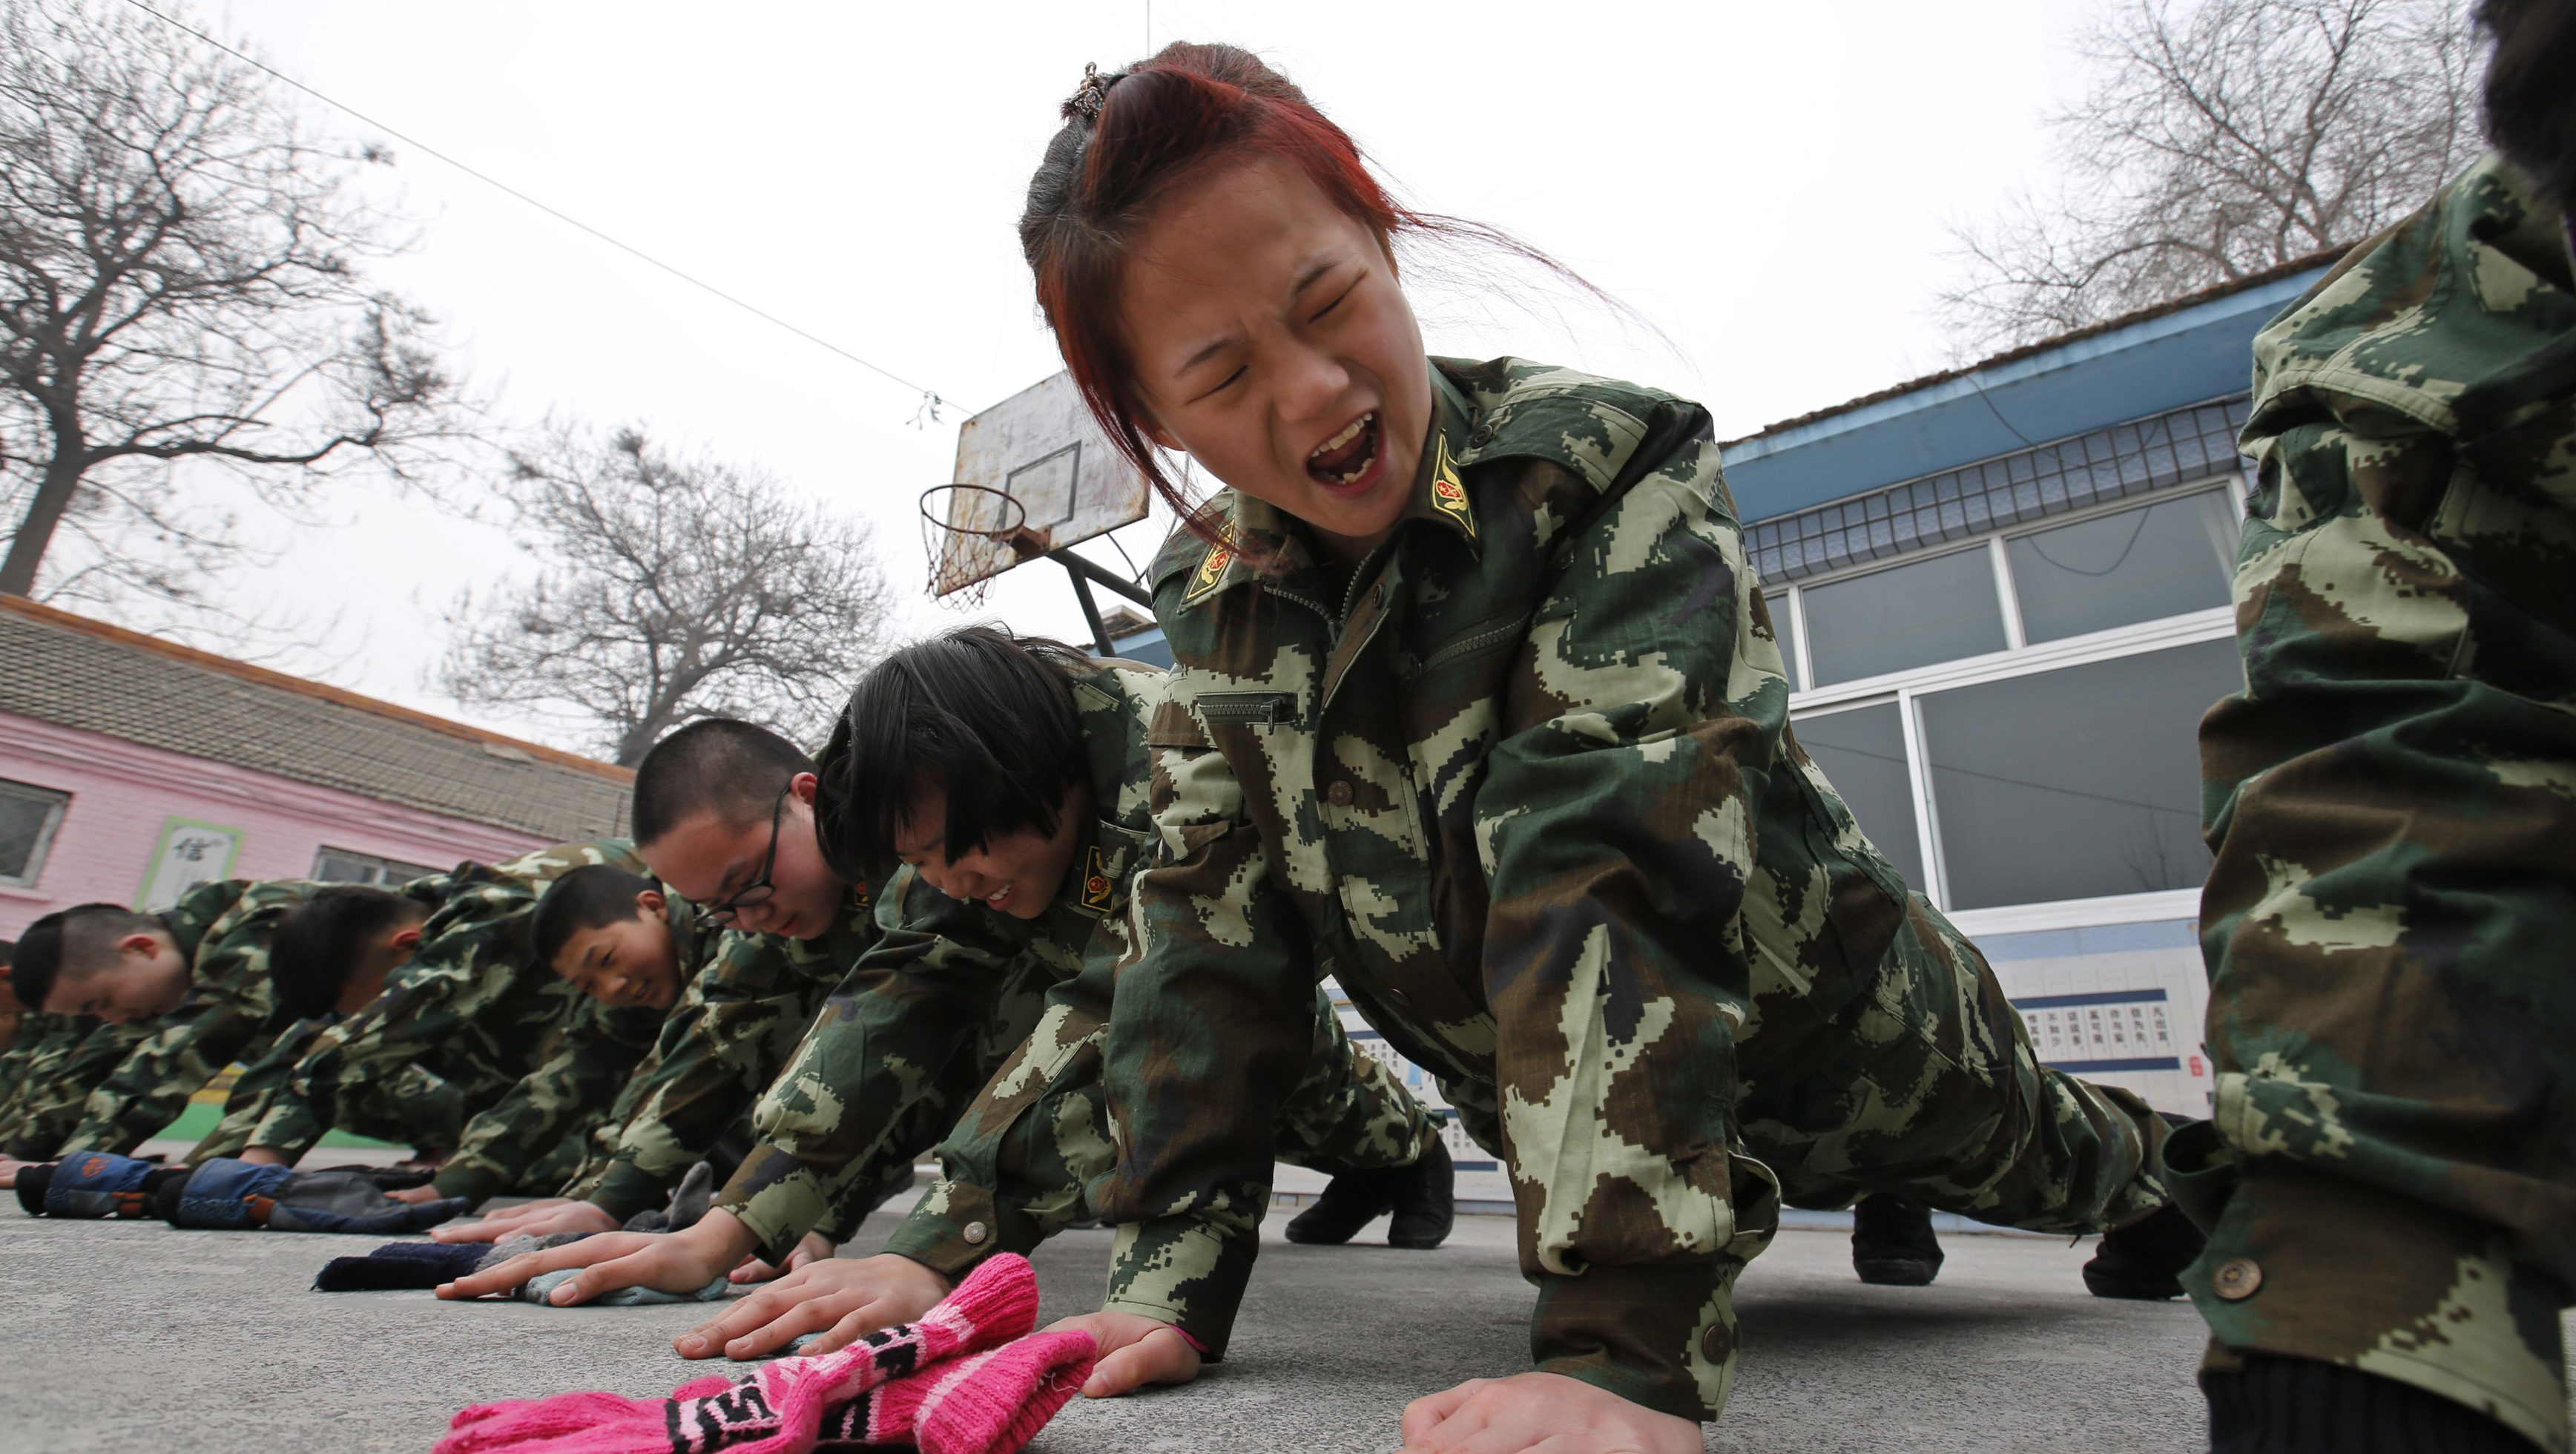 Students receive a group punishment during a military-style close-order drill class at the Qide Education Center in Beijing February 19, 2014. The Qide Education Center is a military-style boot camp which offers treatment for internet addiction. As growing numbers of young people in China immerse themselves in the cyber world, spending hours playing games online, worried parents are increasingly turning to boot camps to crush addiction. Military-style boot camps, designed to wean young people off their addiction to the internet, number as many as 250 in China alone. Picture taken February 19, 2014.